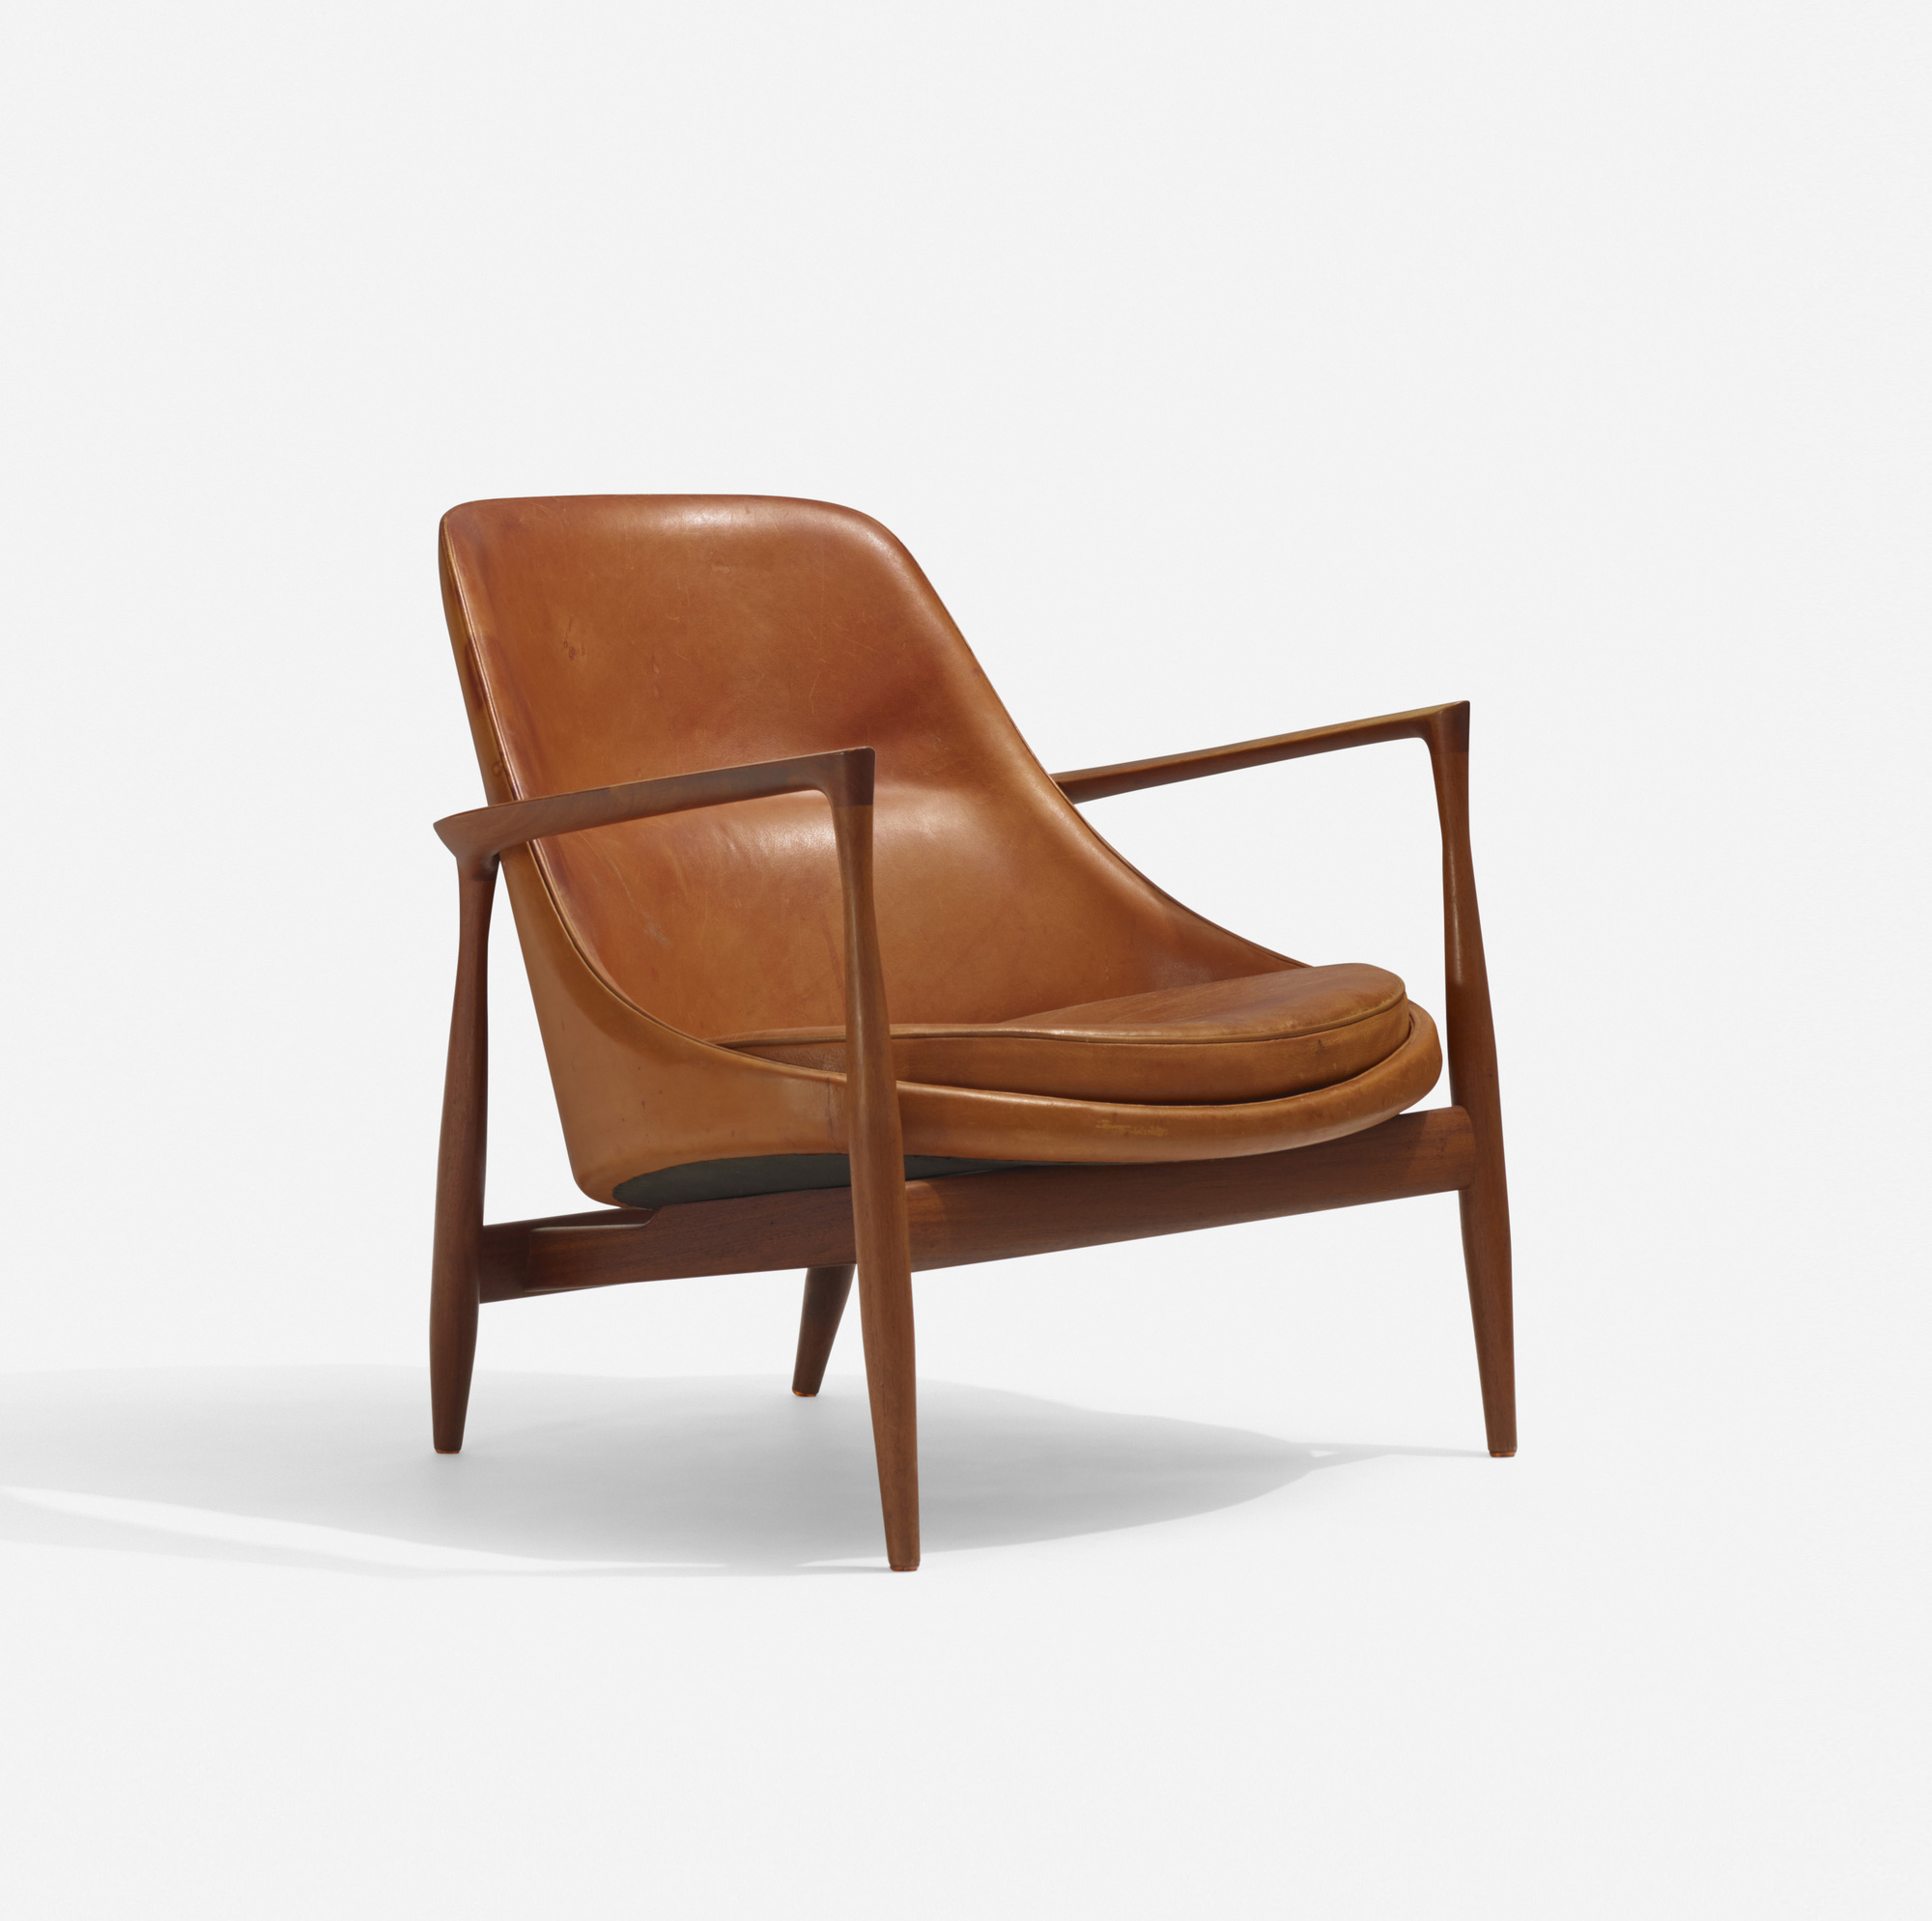 283: Ib Kofod-Larsen / Elizabeth chair (1 of 3)